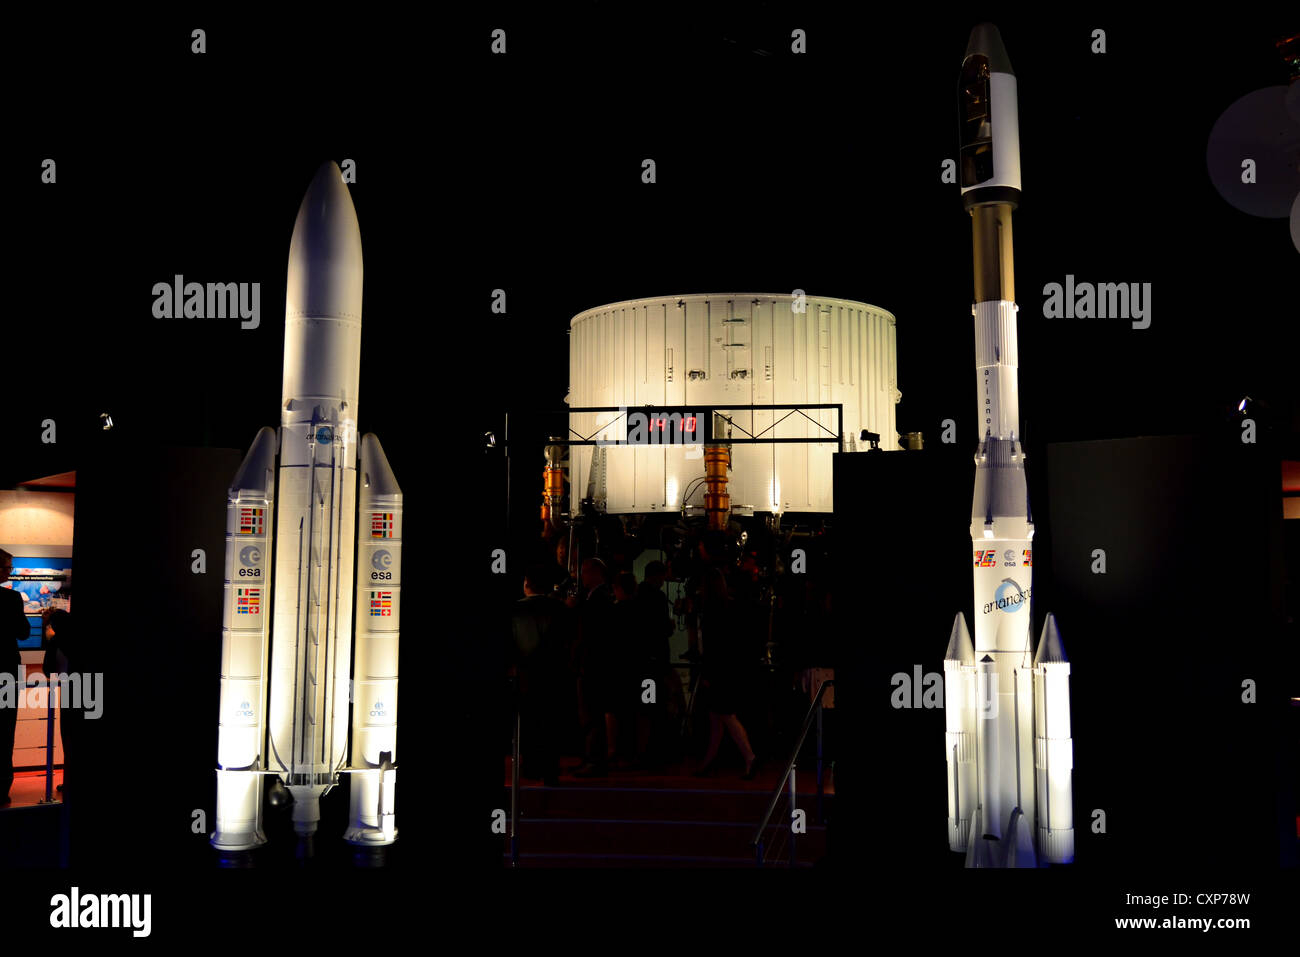 Models of Ariane 4 and 5 rockets at the Space Expo, Noordwijk, Netherlands. - Stock Image